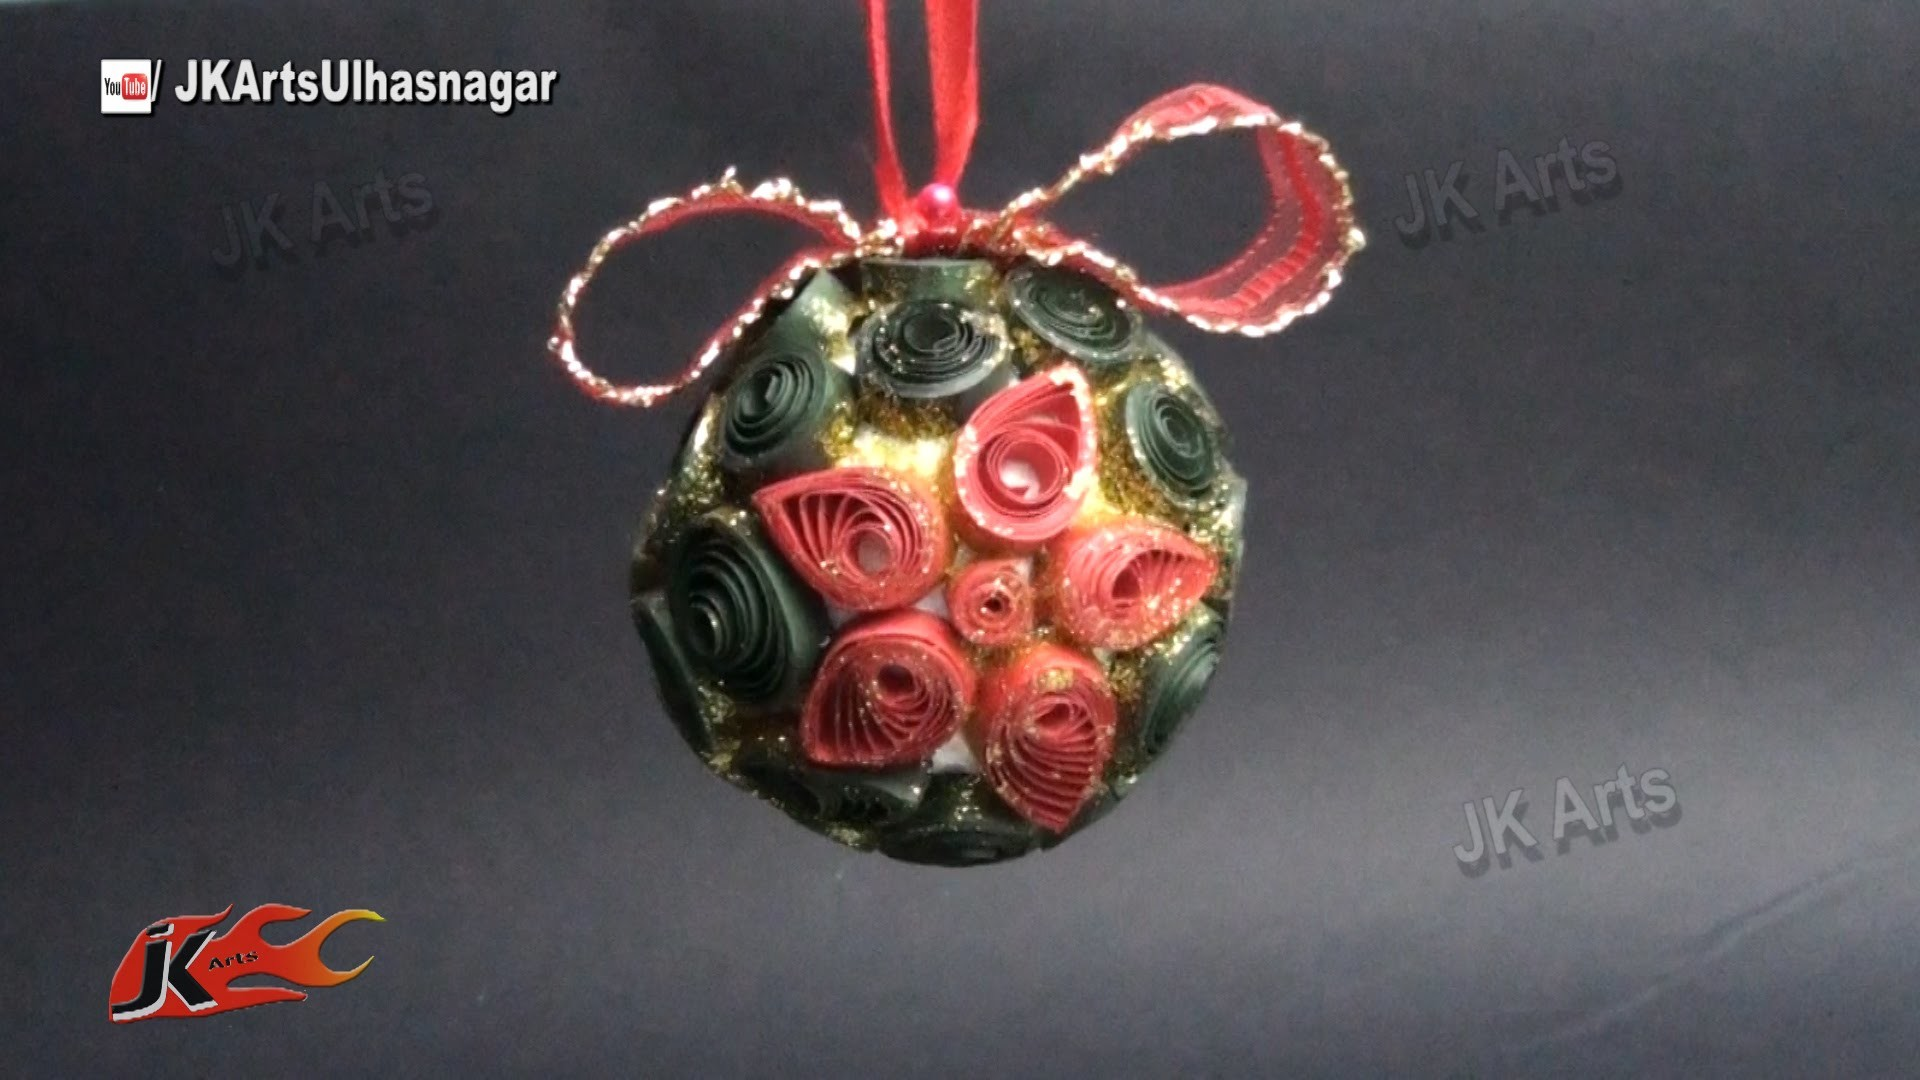 DIY Paper Quilling Christmas ball ornament Decorations | How to make | JK Arts 792